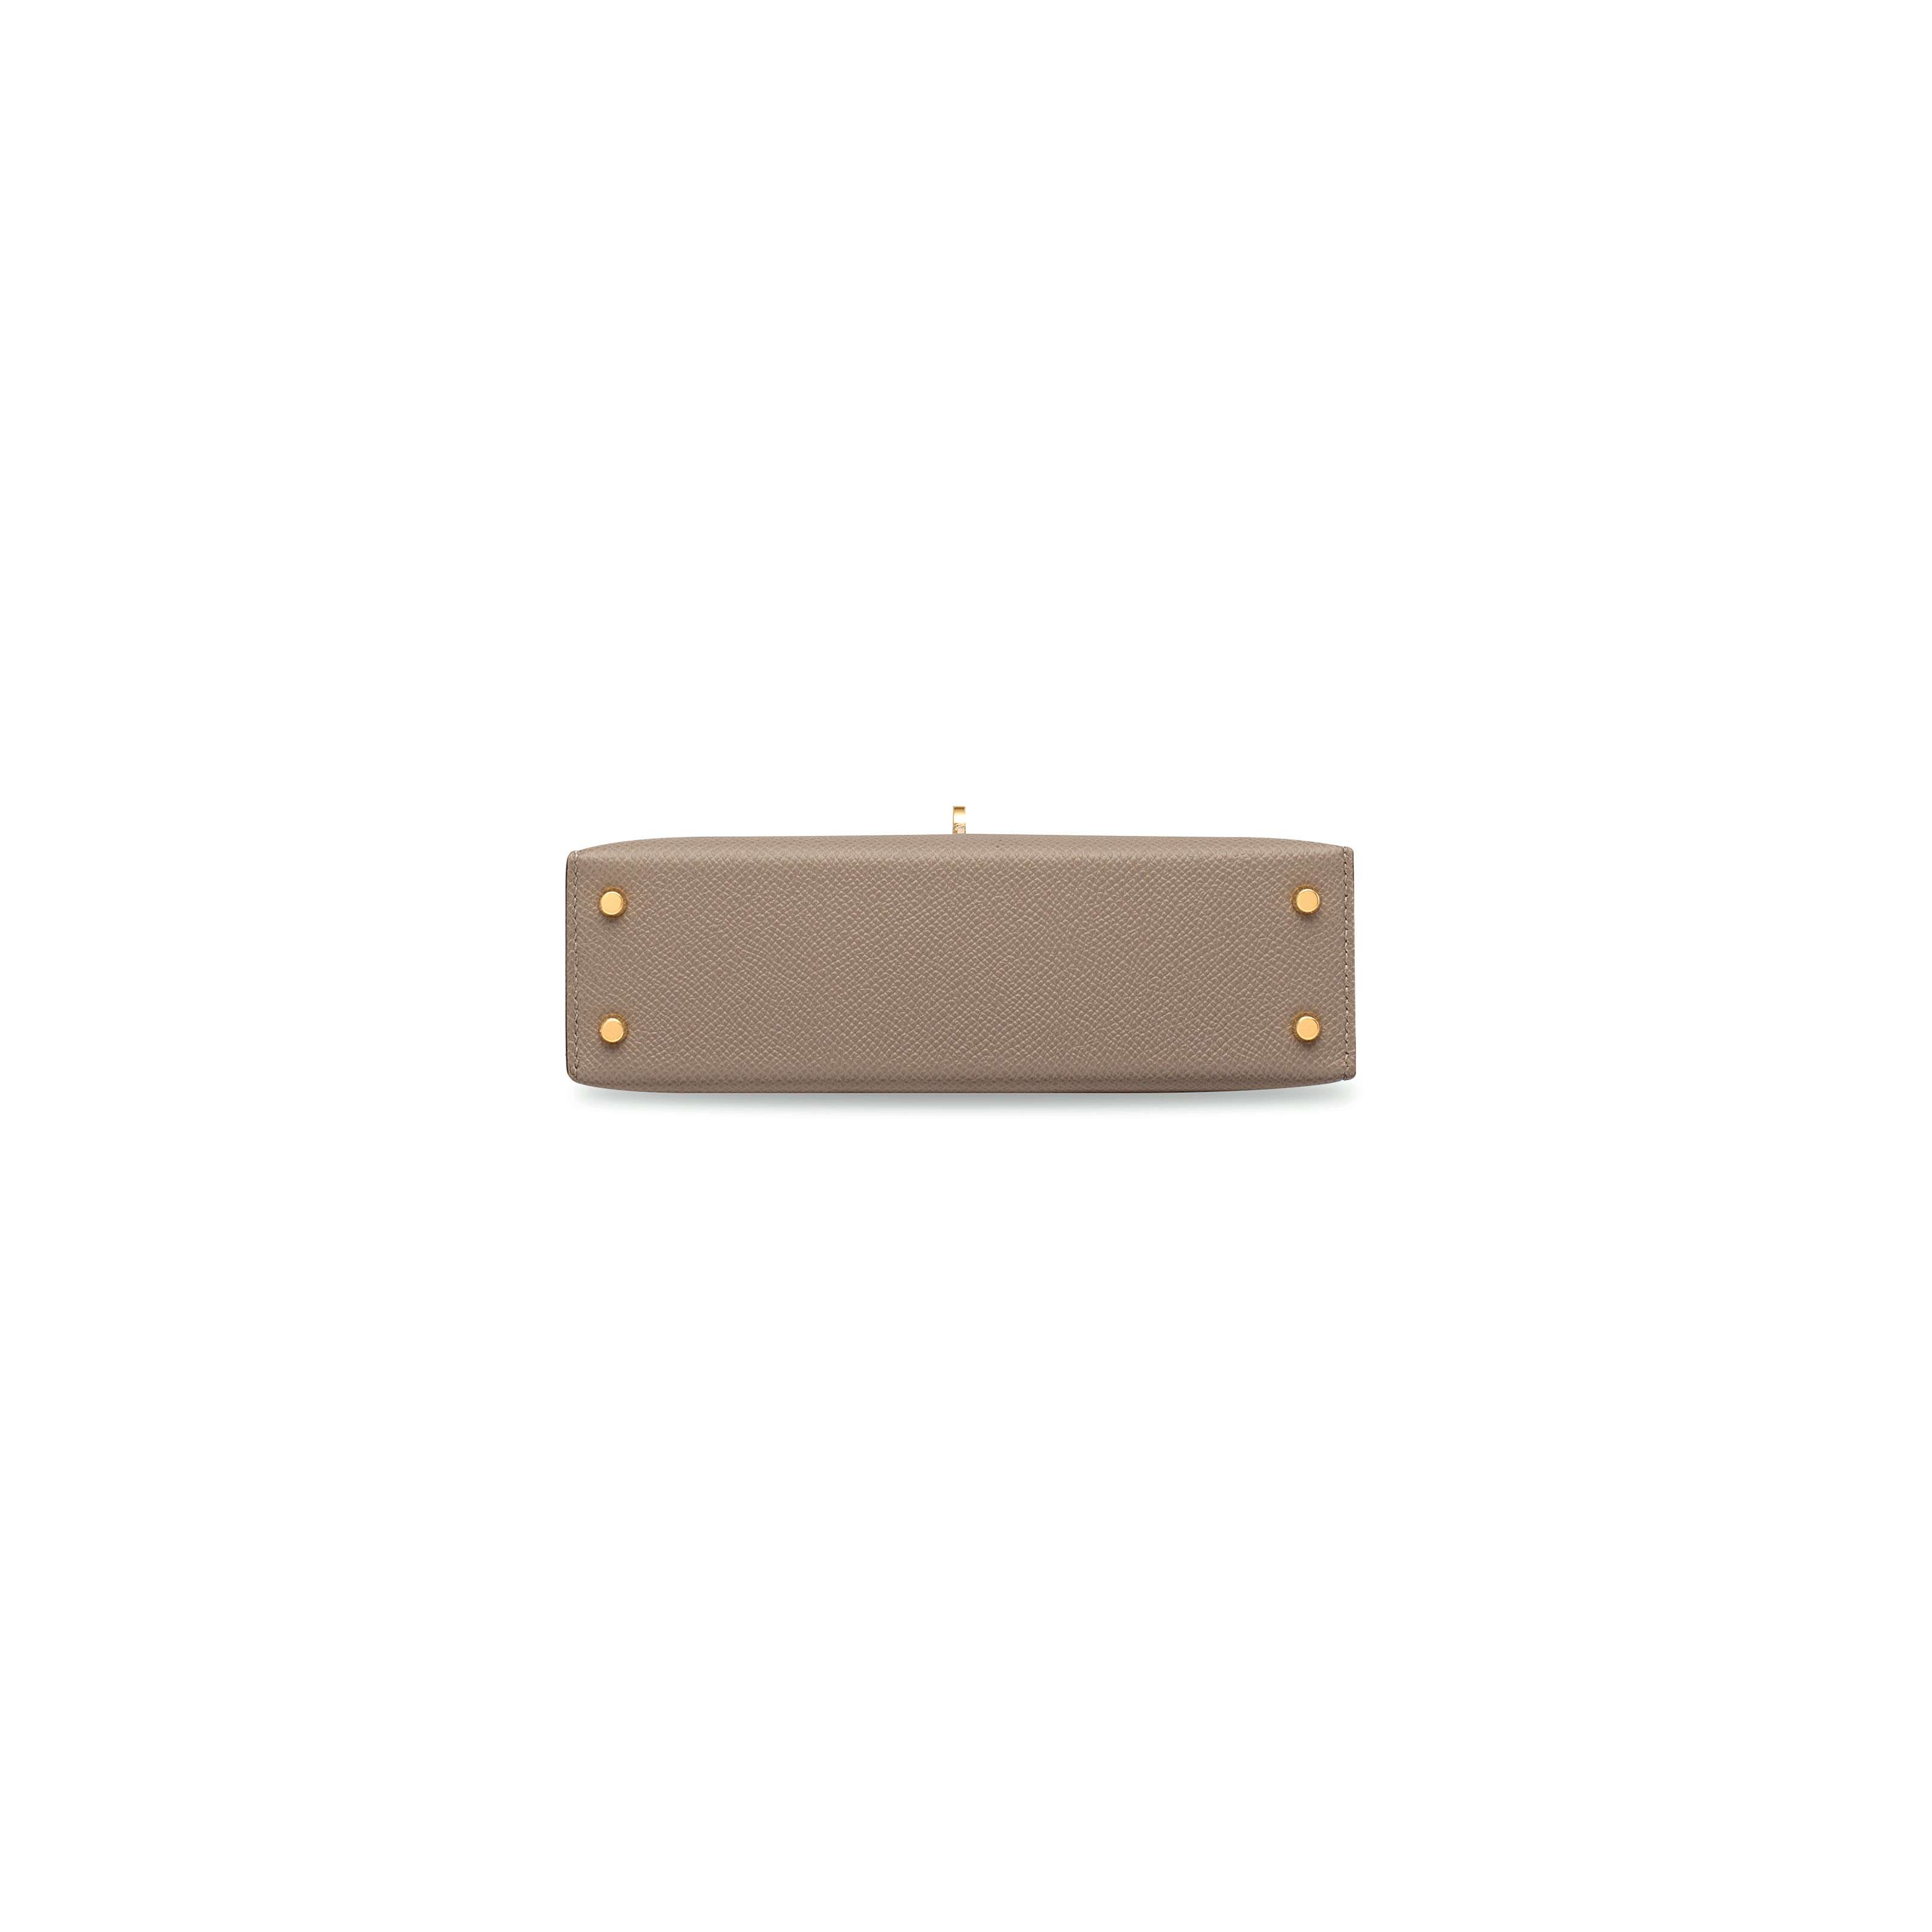 43ba9373d9d4 A GRIS ASPHALTE EPSOM LEATHER MINI KELLY 20 II WITH GOLD HARDWARE ...